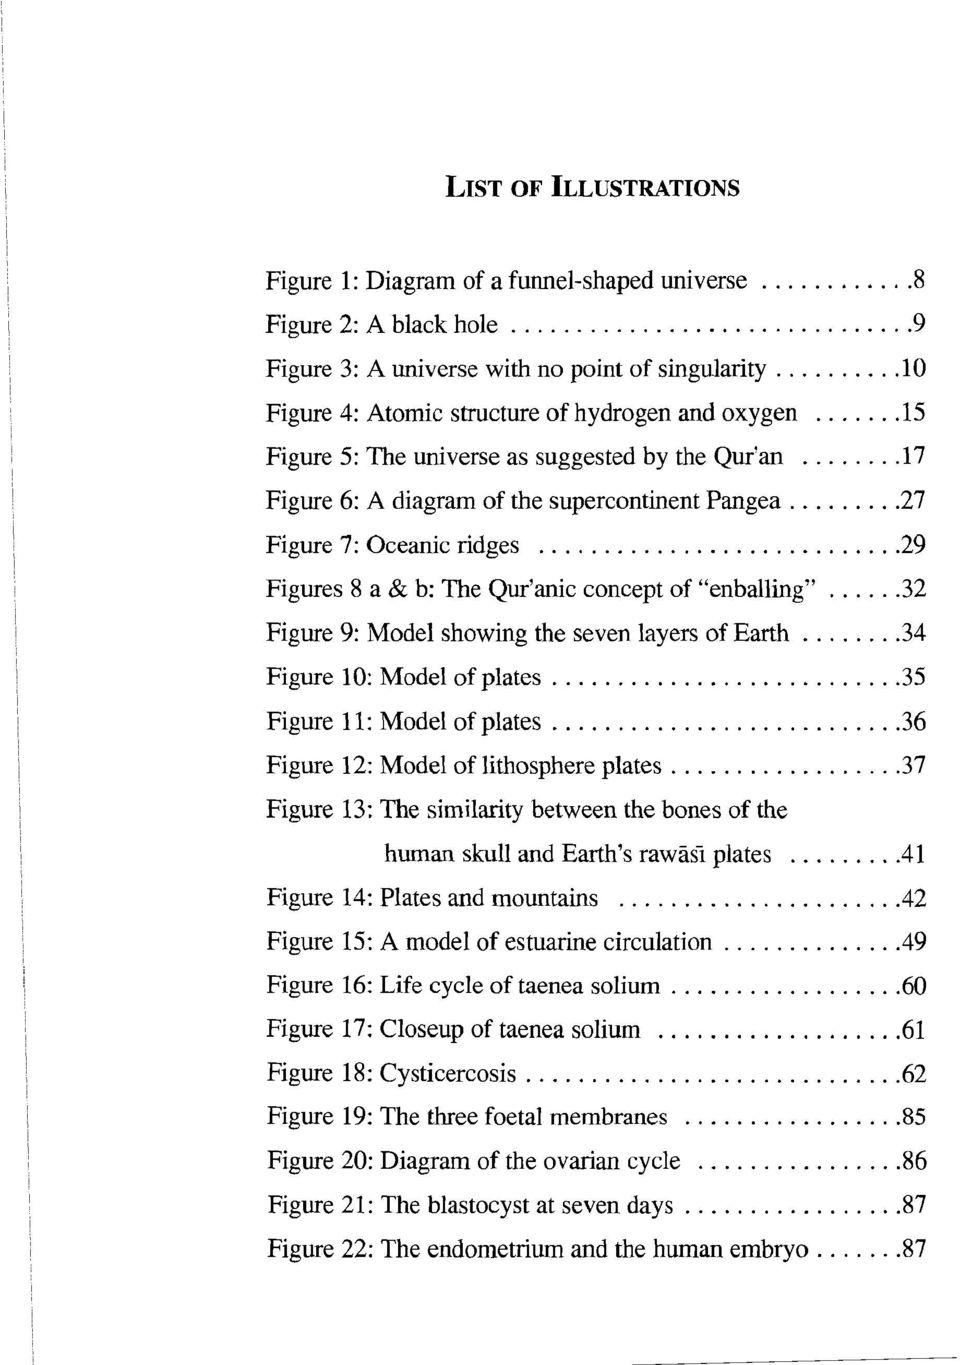 "a & b: The Qur'anic concept of ""enballing"" 32 Figure 9: Model showing the seven layers of Earth 34 Figure 10: Model of plates 35 Figure 11: Model of plates 36 Figure 12: Model of lithosphere plates"